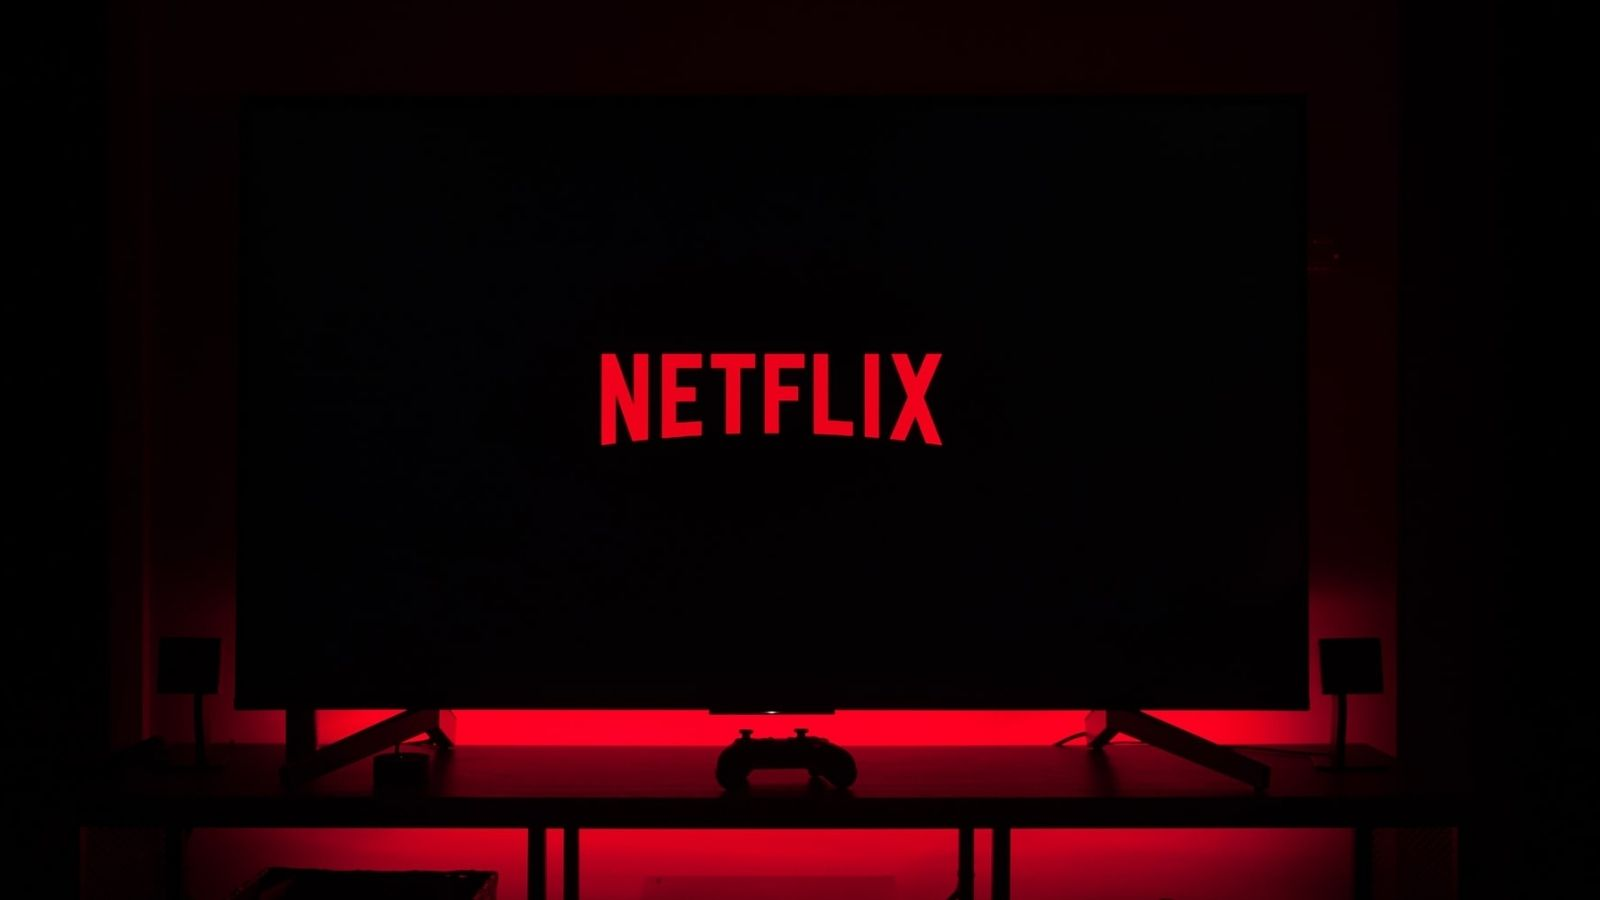 Netflix In Black And Red Light